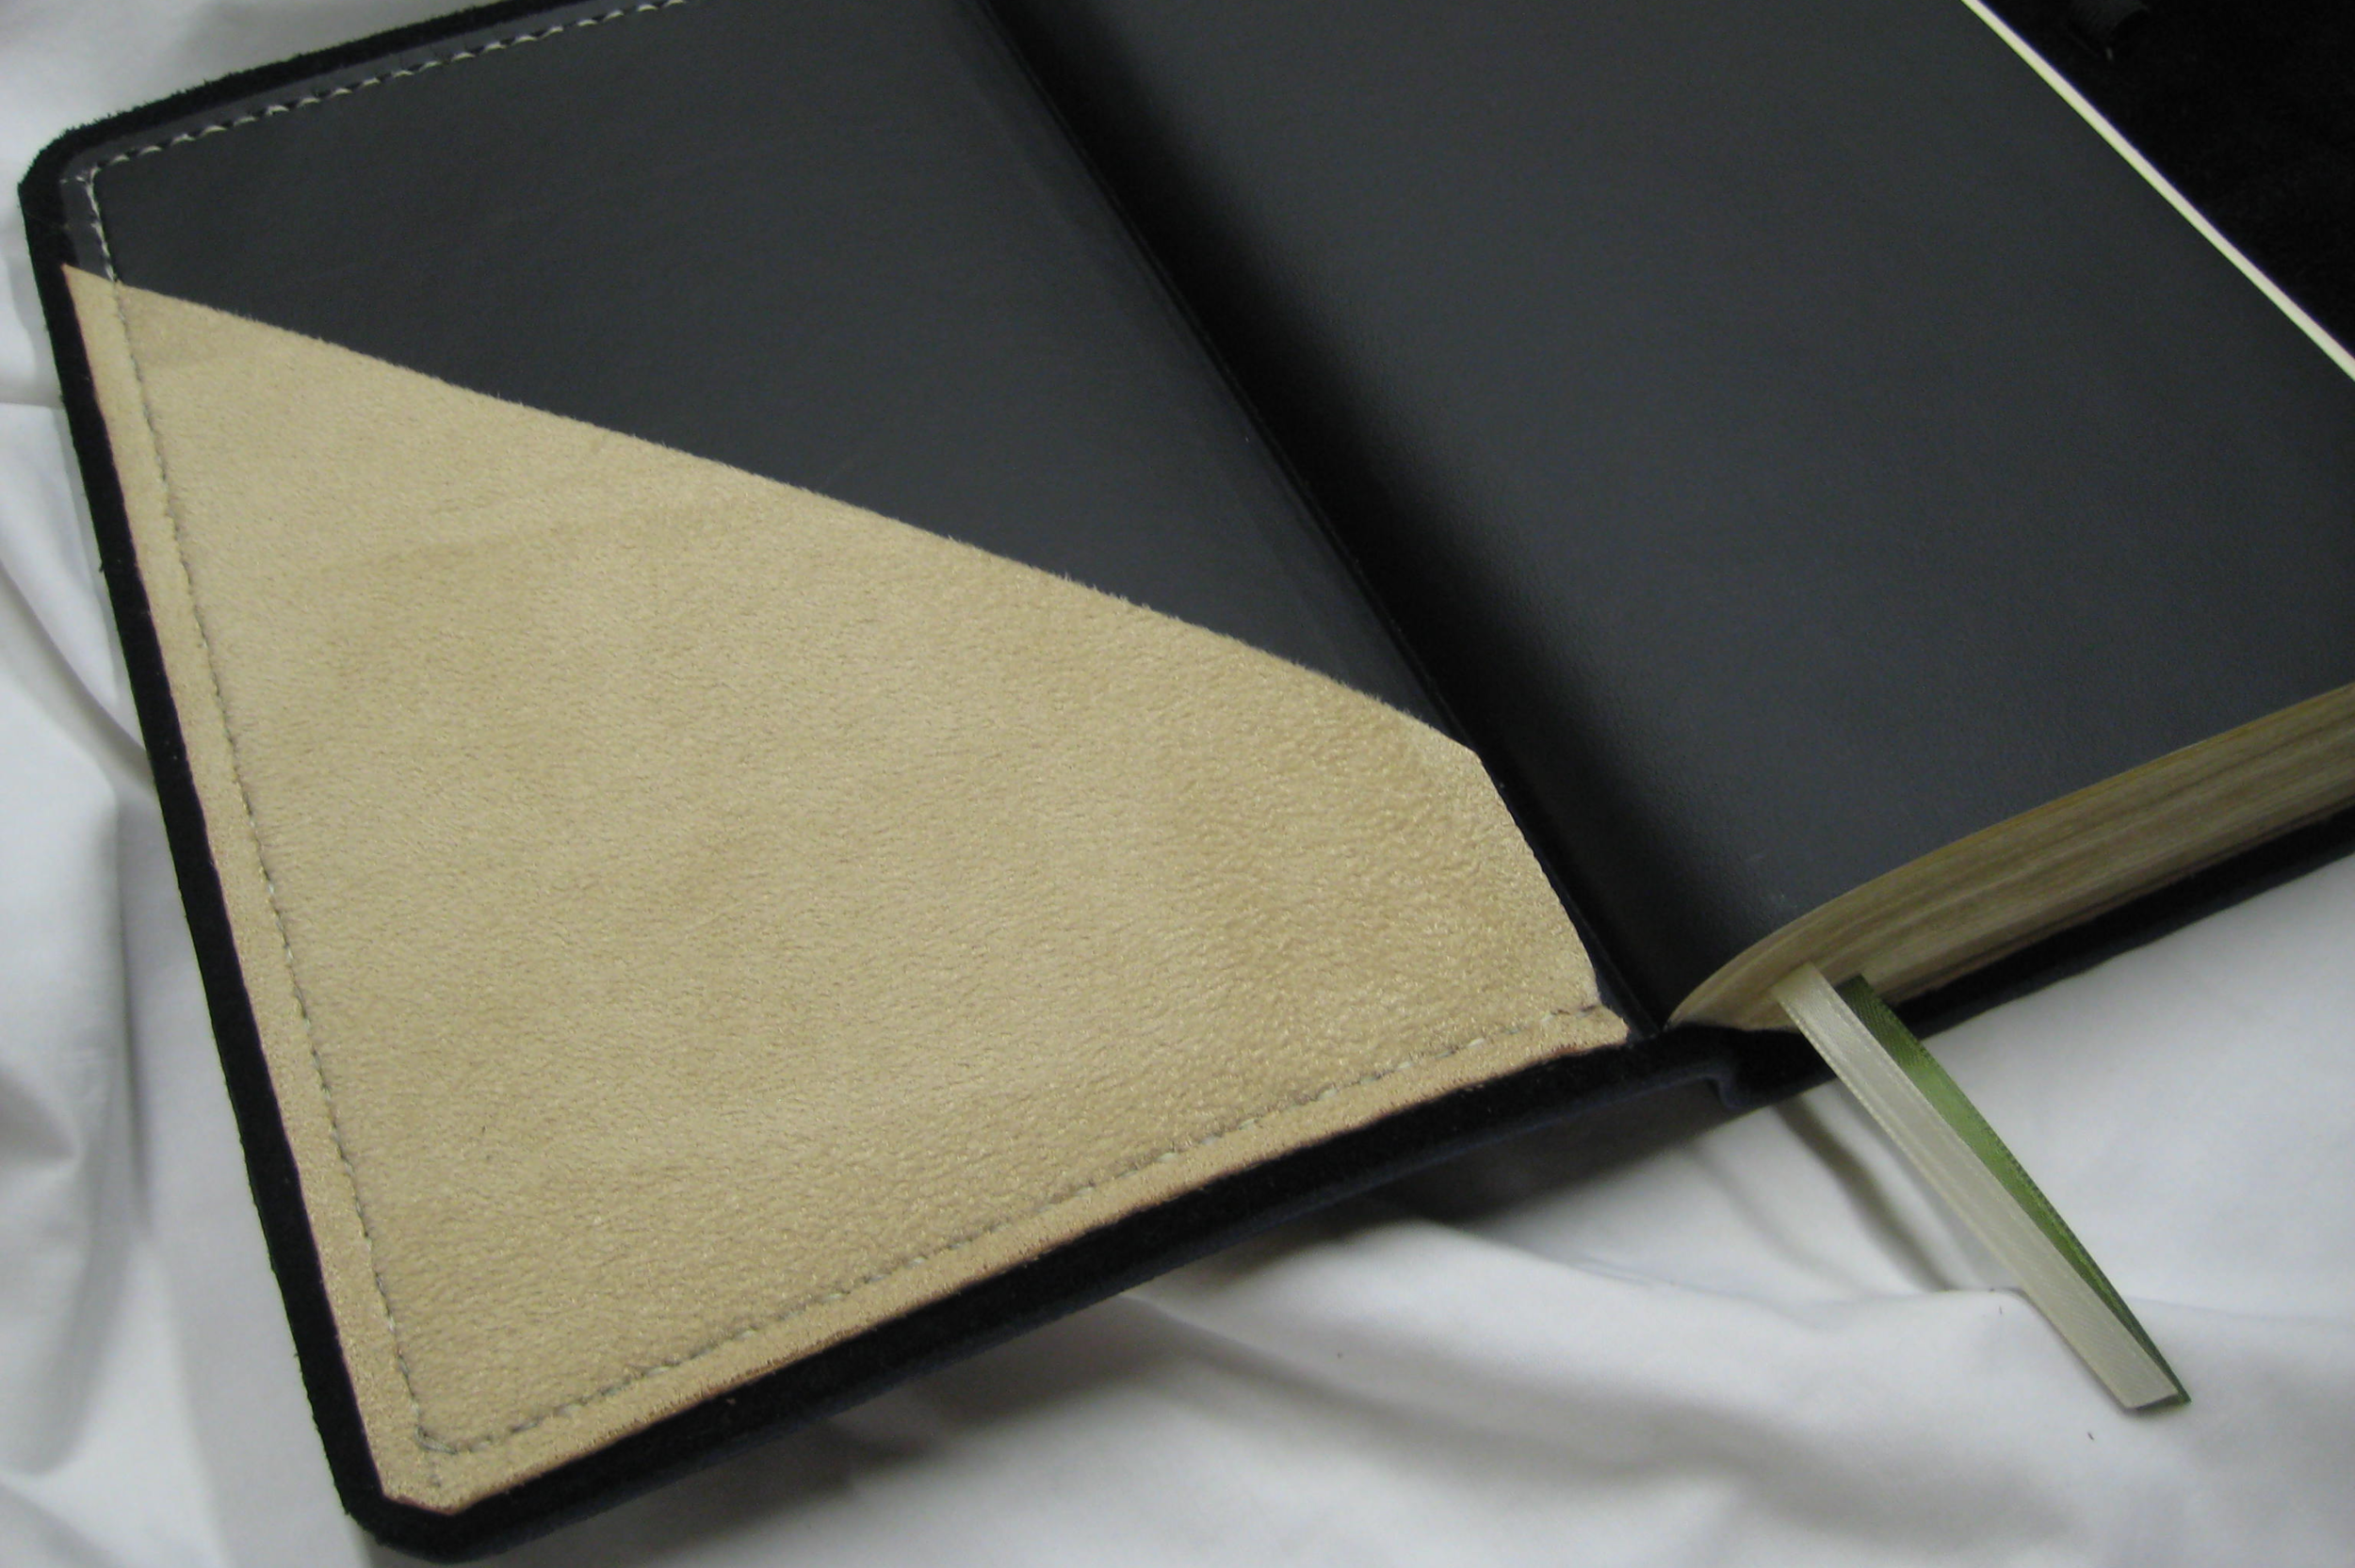 Pockets : Hand built fabric suede pockets on the inside of the front, back or both covers. A low profile and convenient way to keep a few loose papers with your Bible.